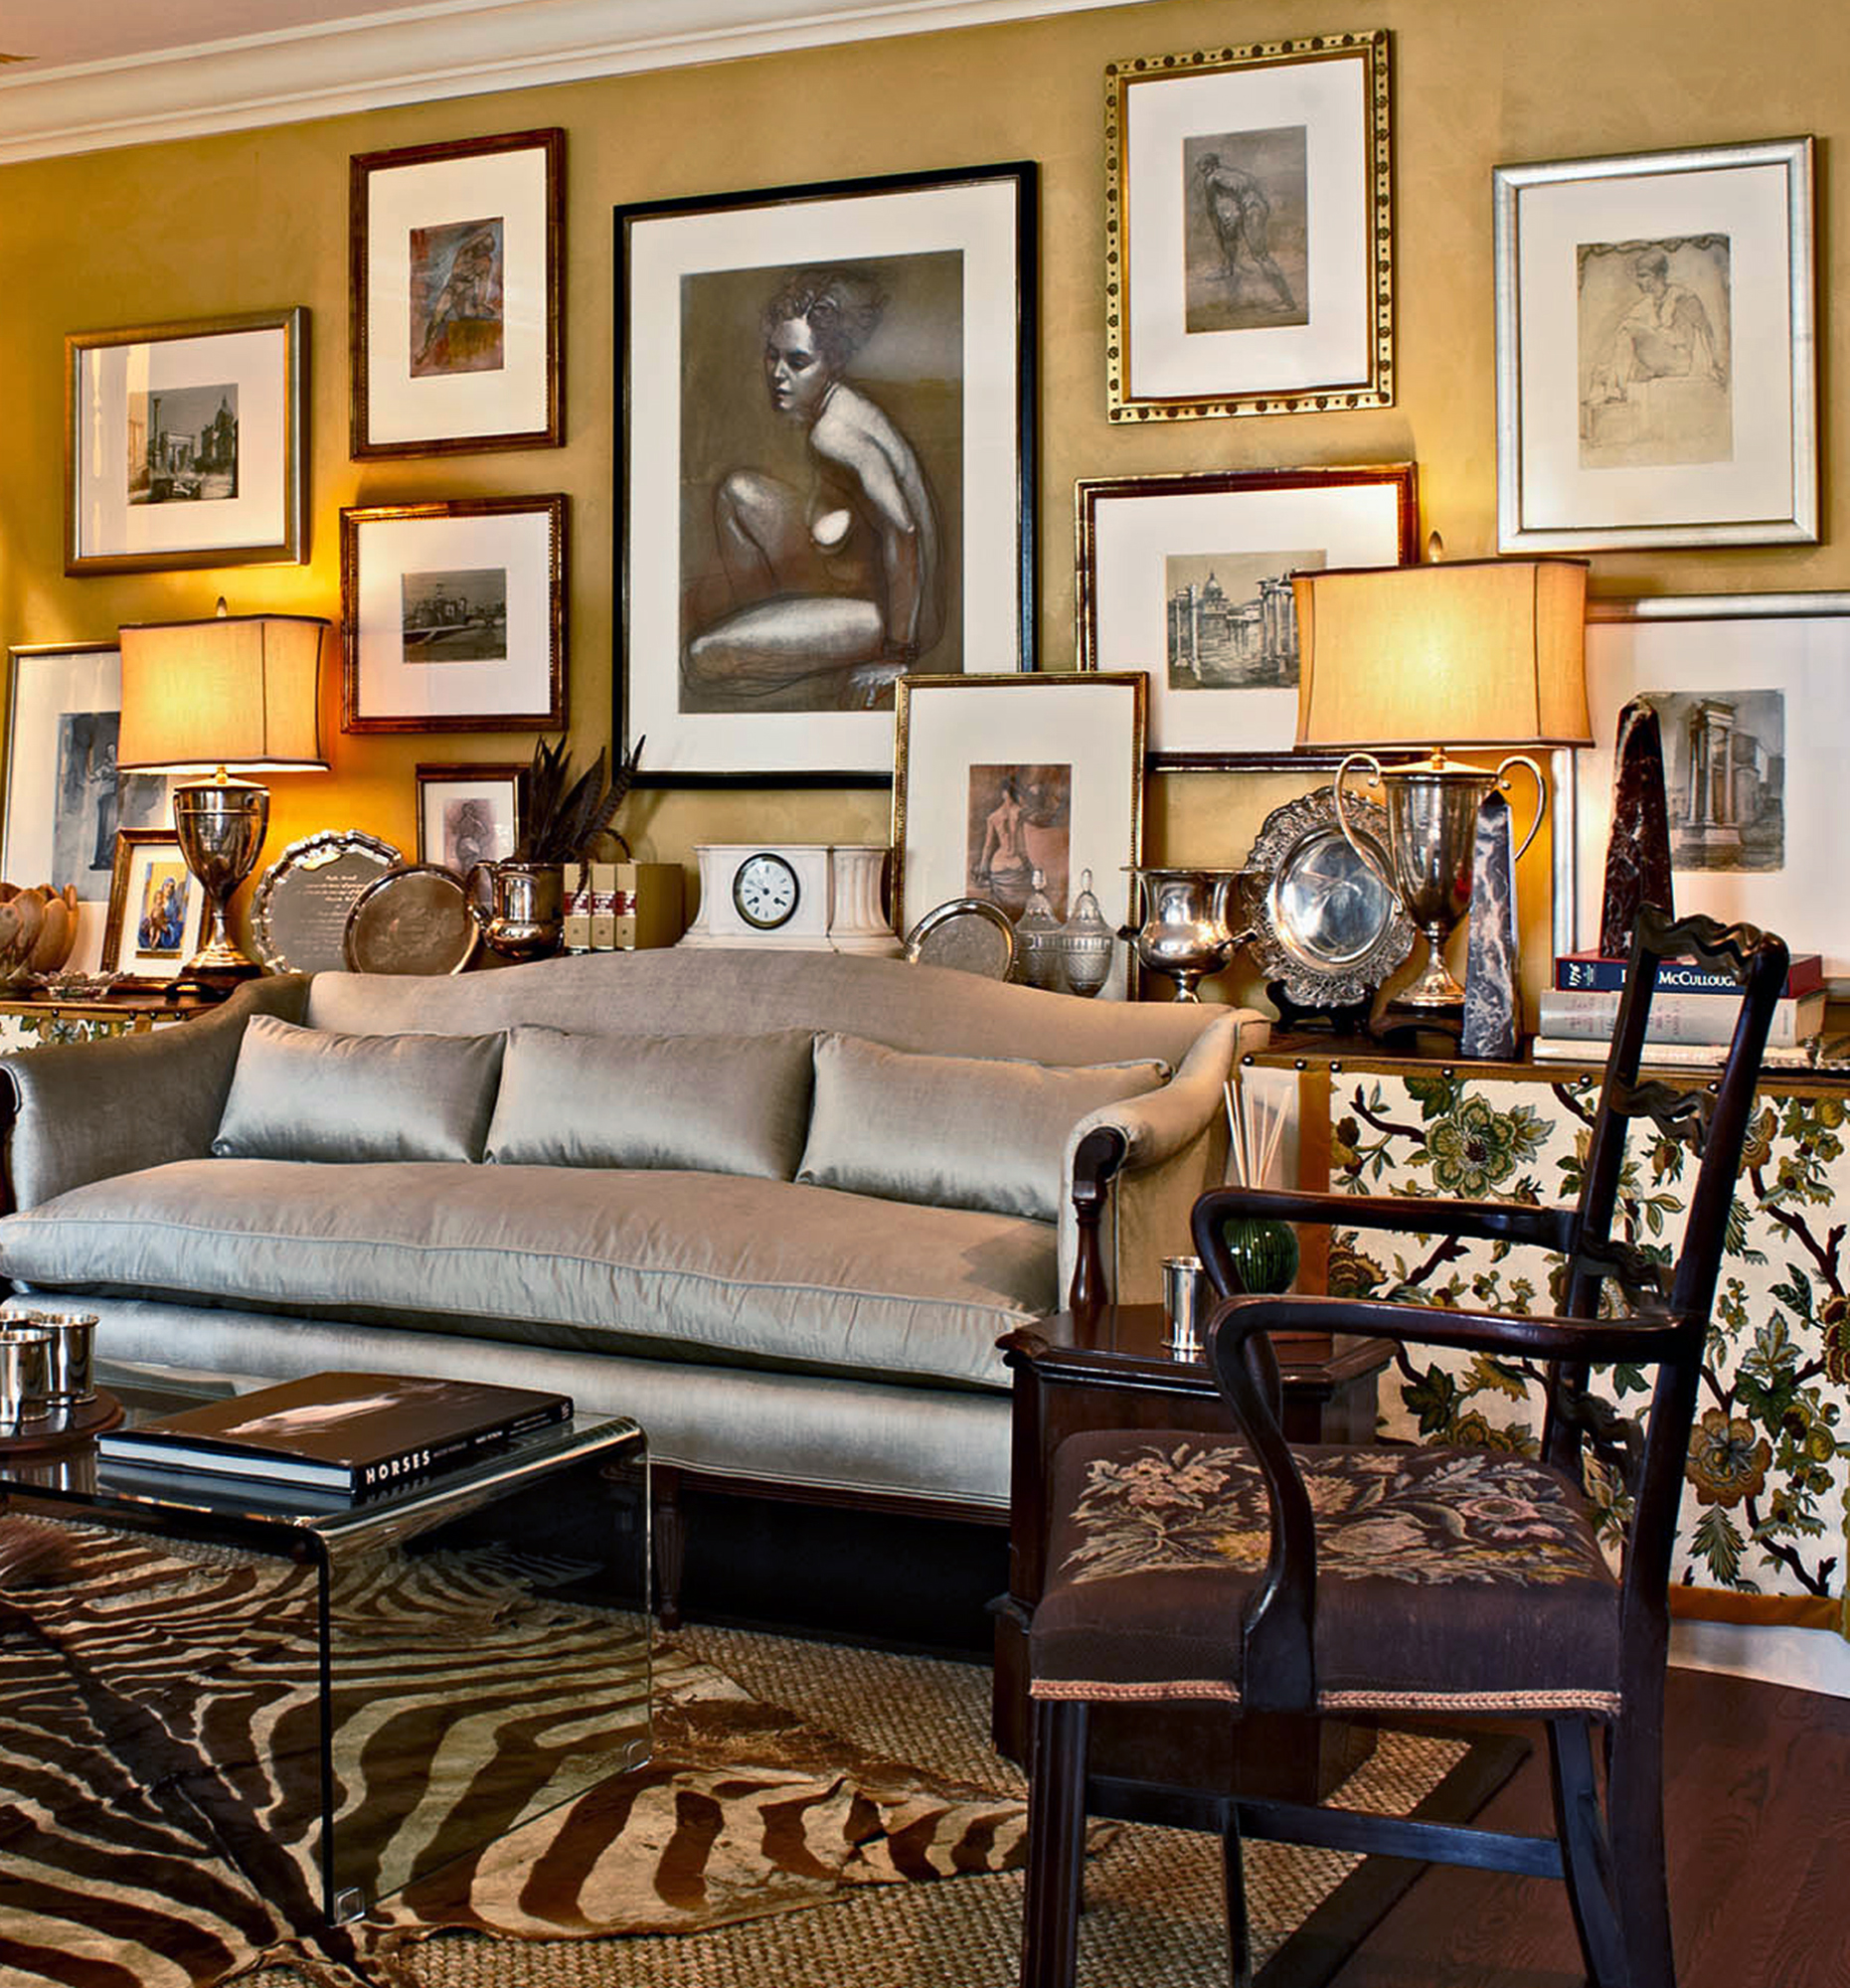 HenrickInteriorDesign-Langley Art.jpg